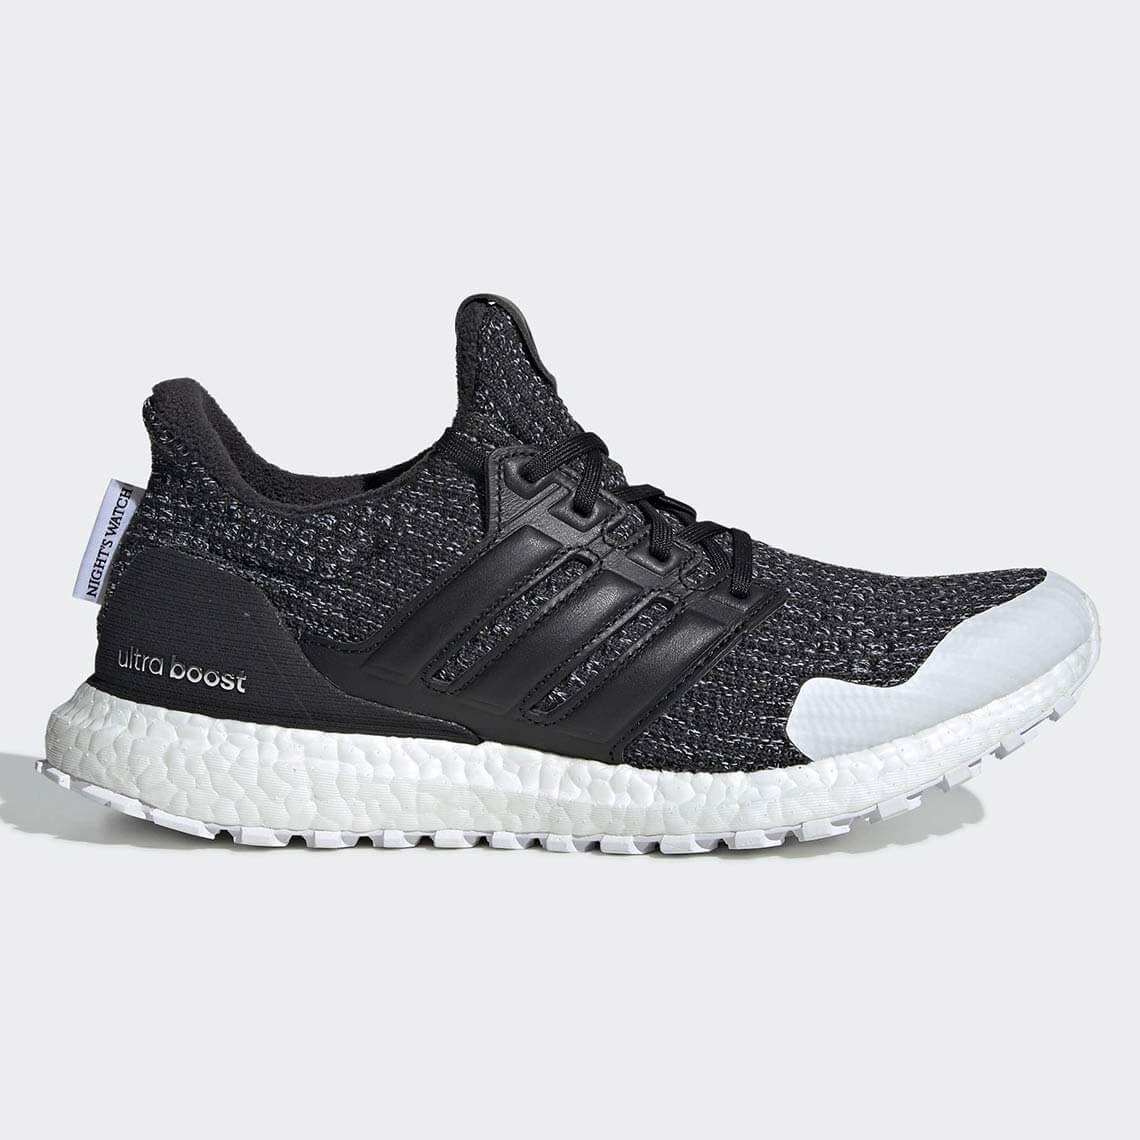 game of thrones adidas ultra boost nights watch EE3707 4